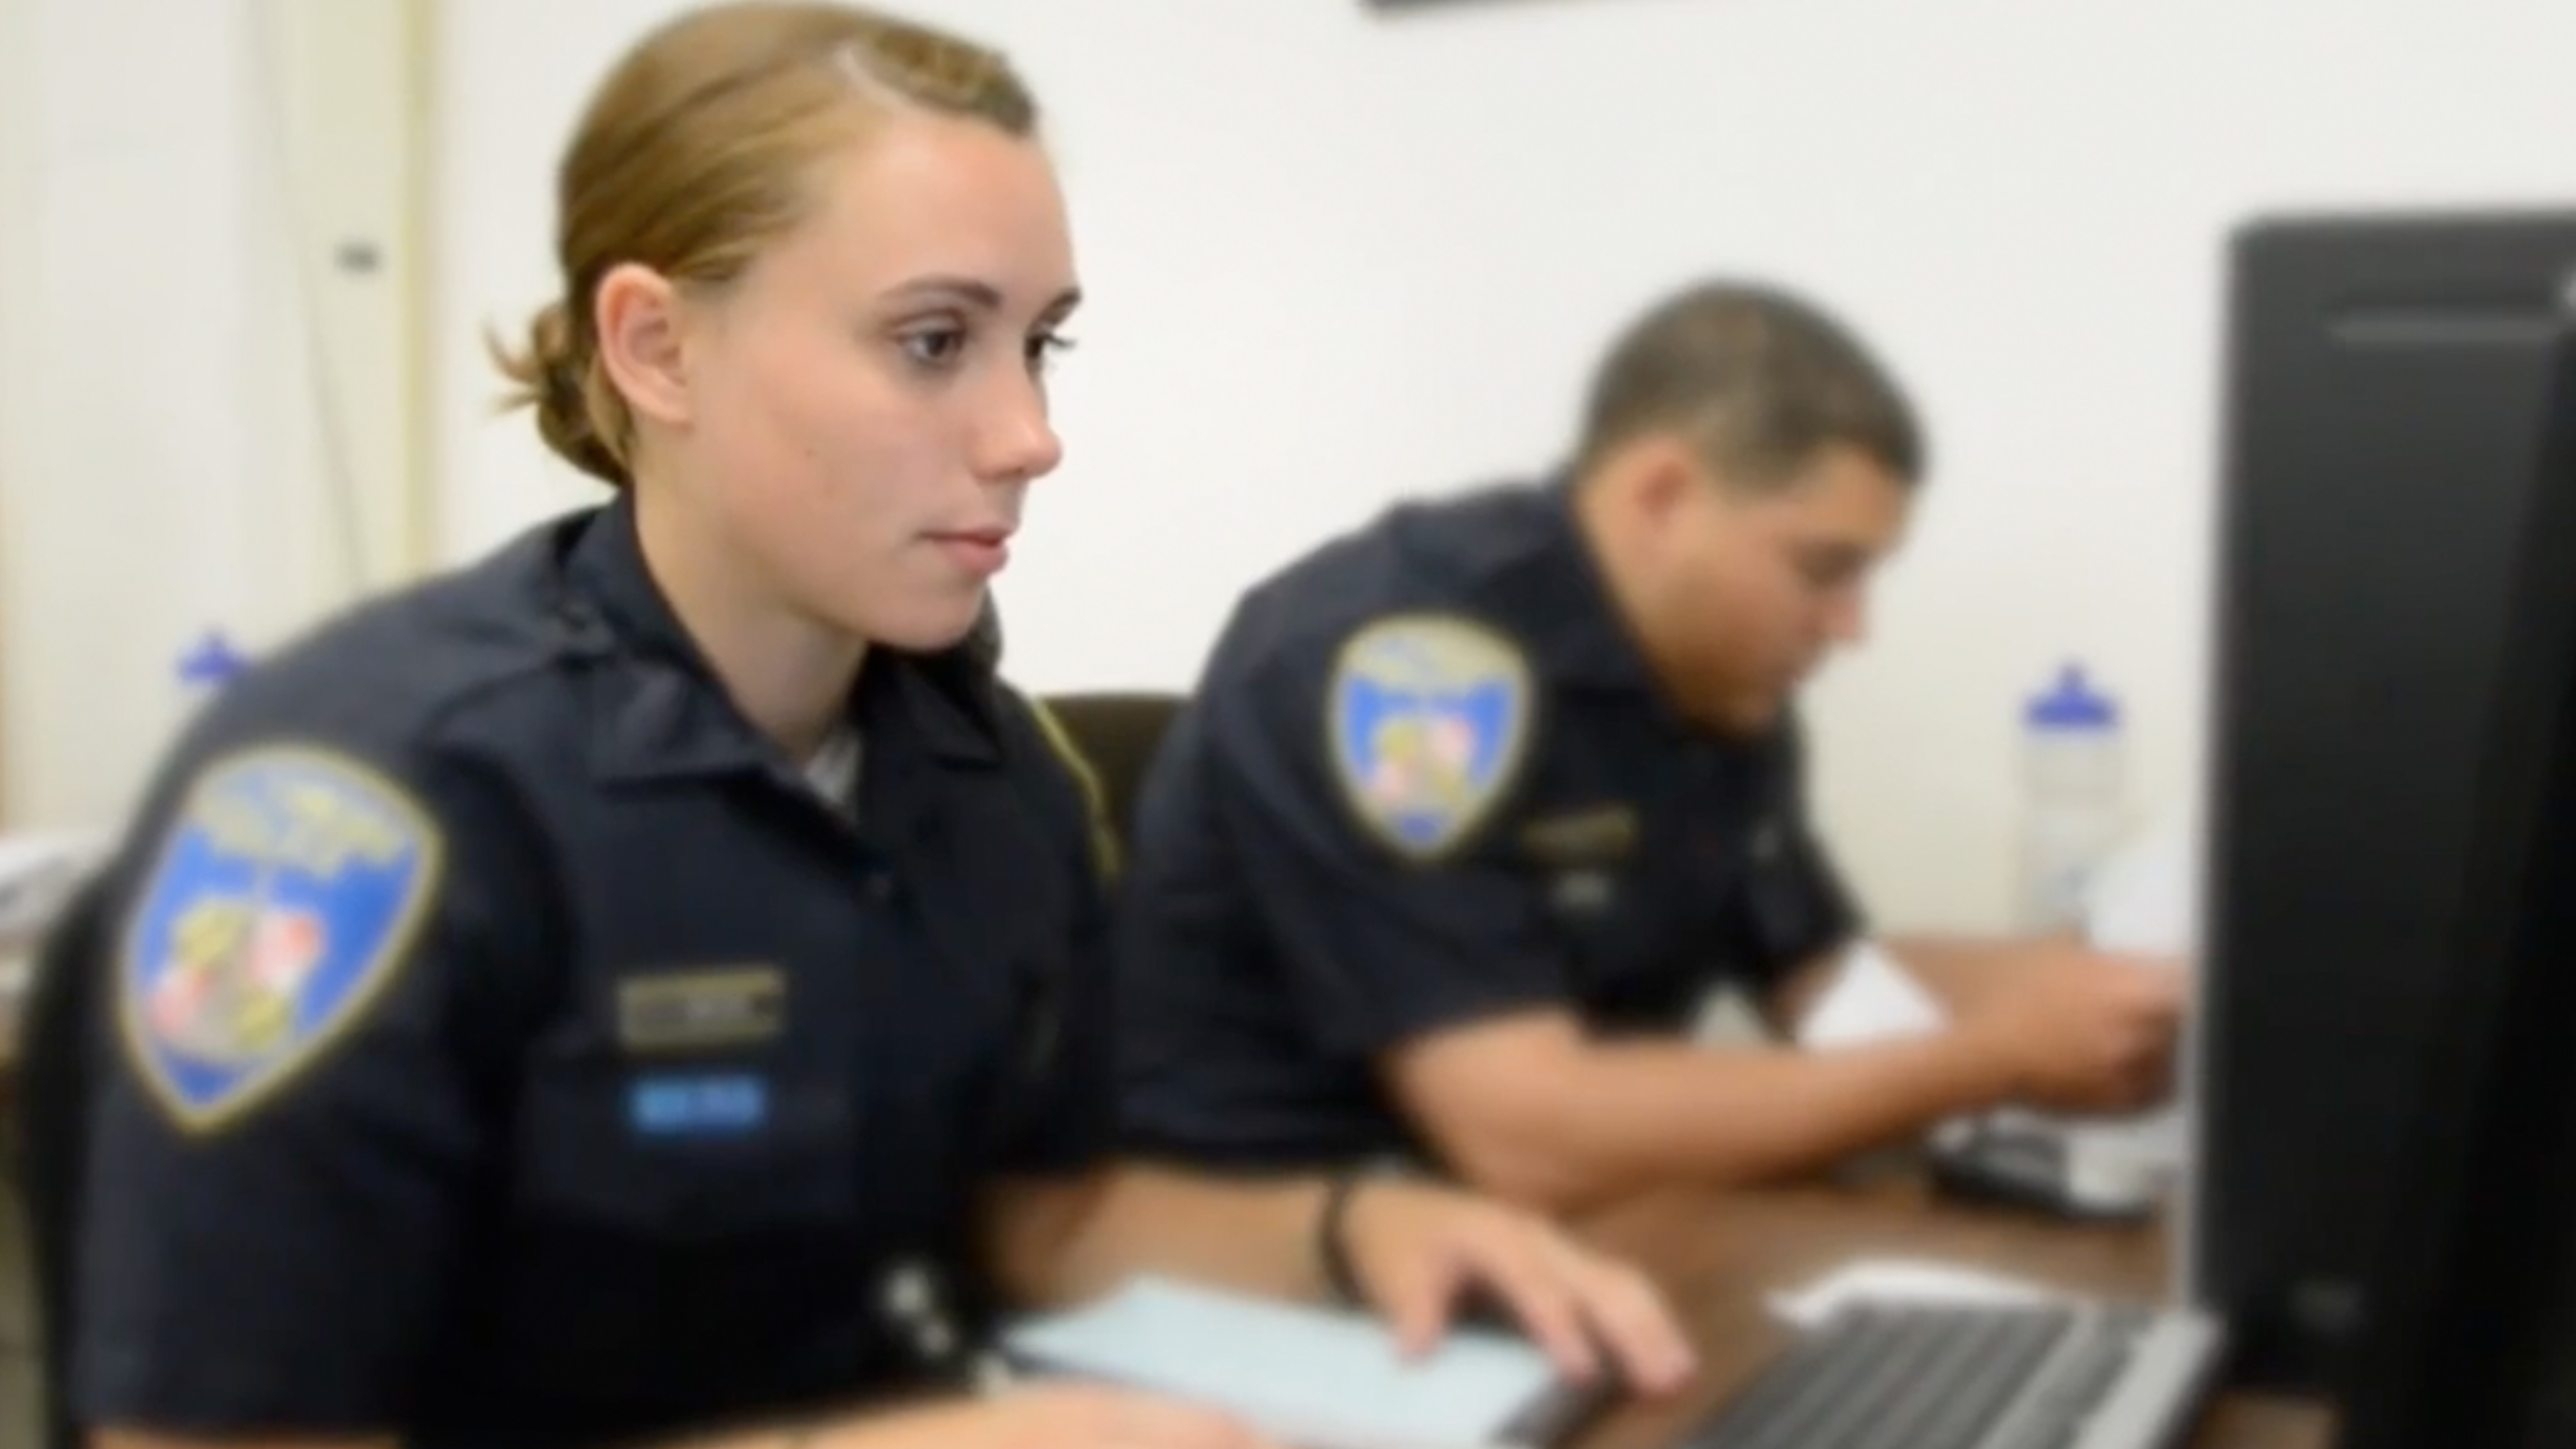 Responders participate in an online course.